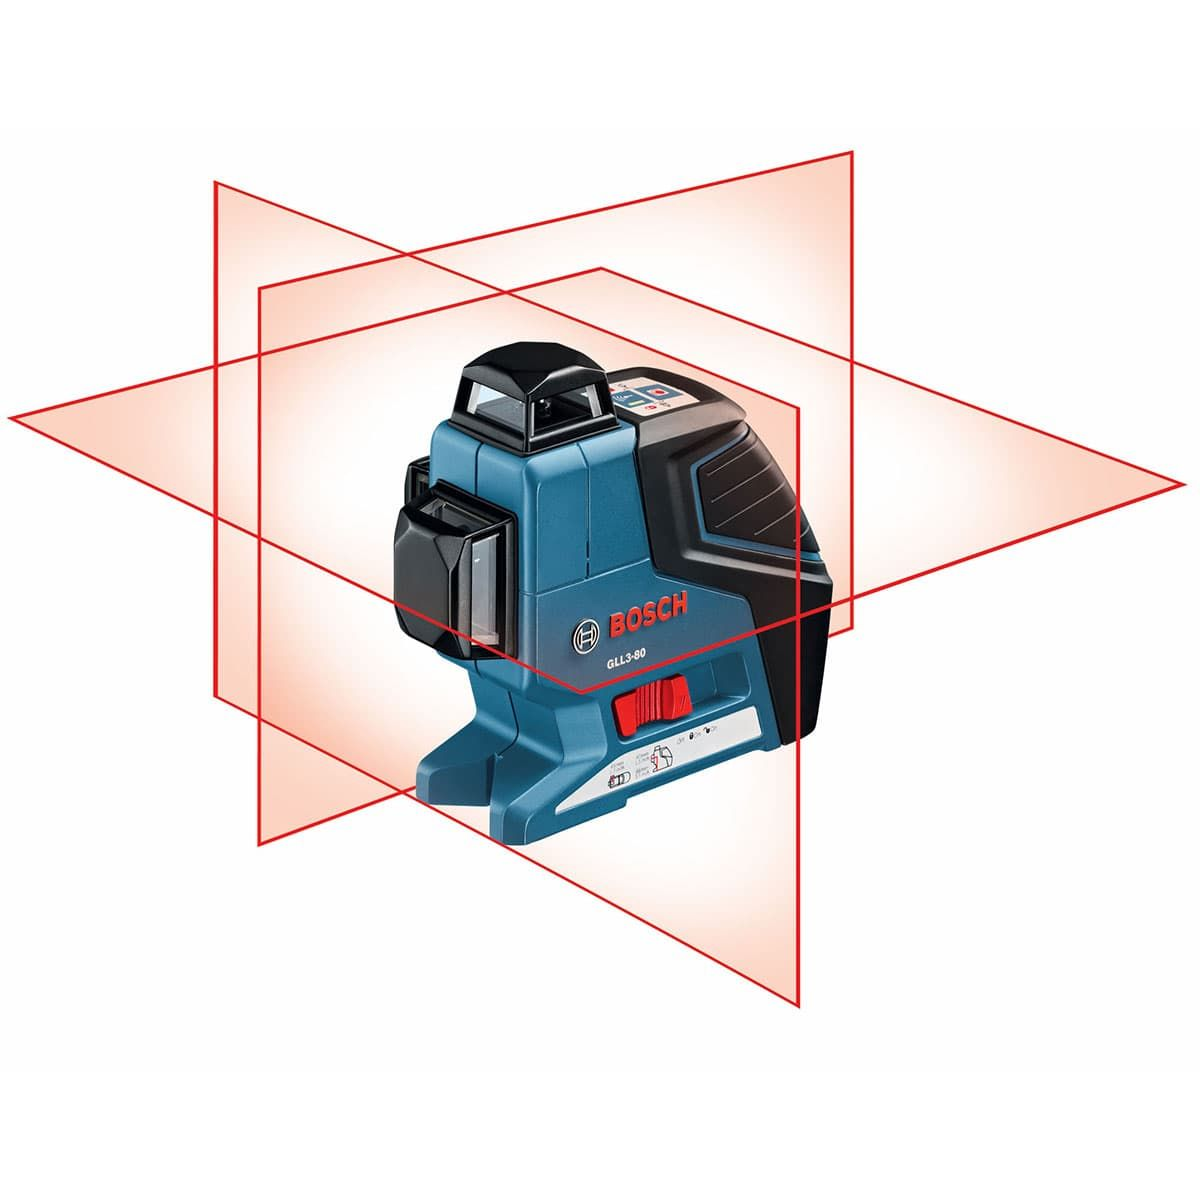 Bosch Gll 3 80 Lr2 Three Plane Leveling And Alignment Laser Laser Levels Bosch Bosch Tools